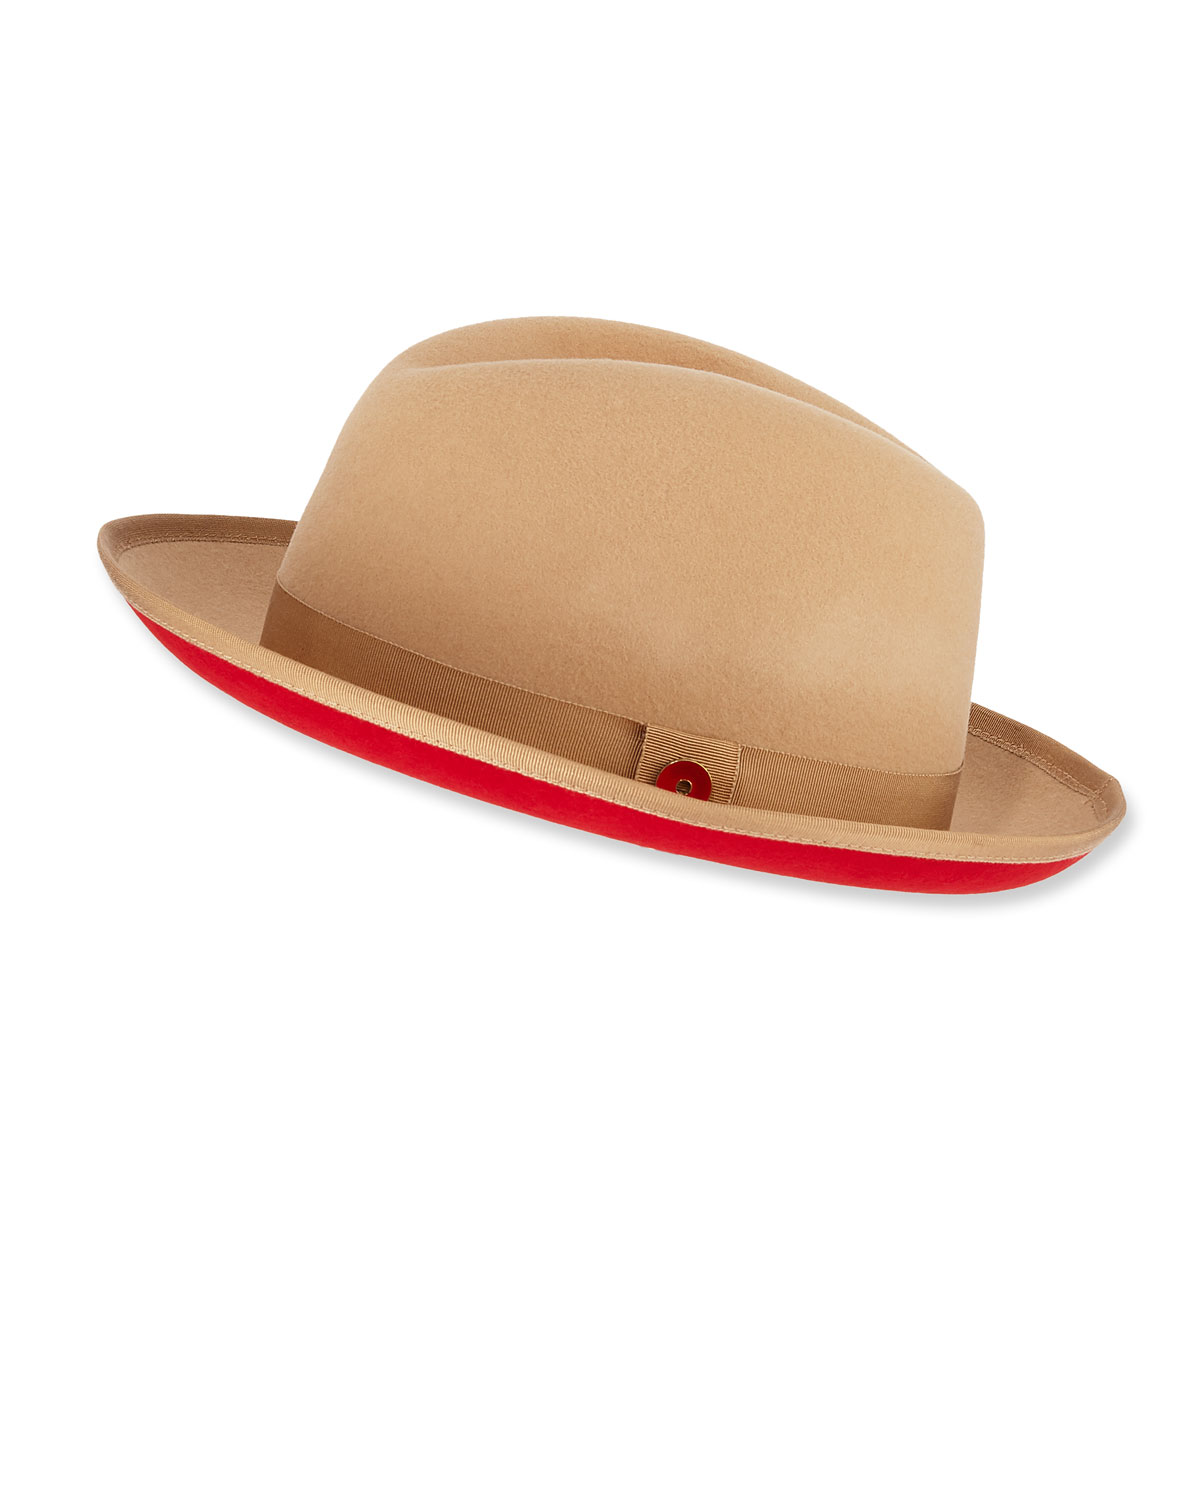 Keith and James Men s King Red-Brim Wool Fedora Hat d4f55a37181